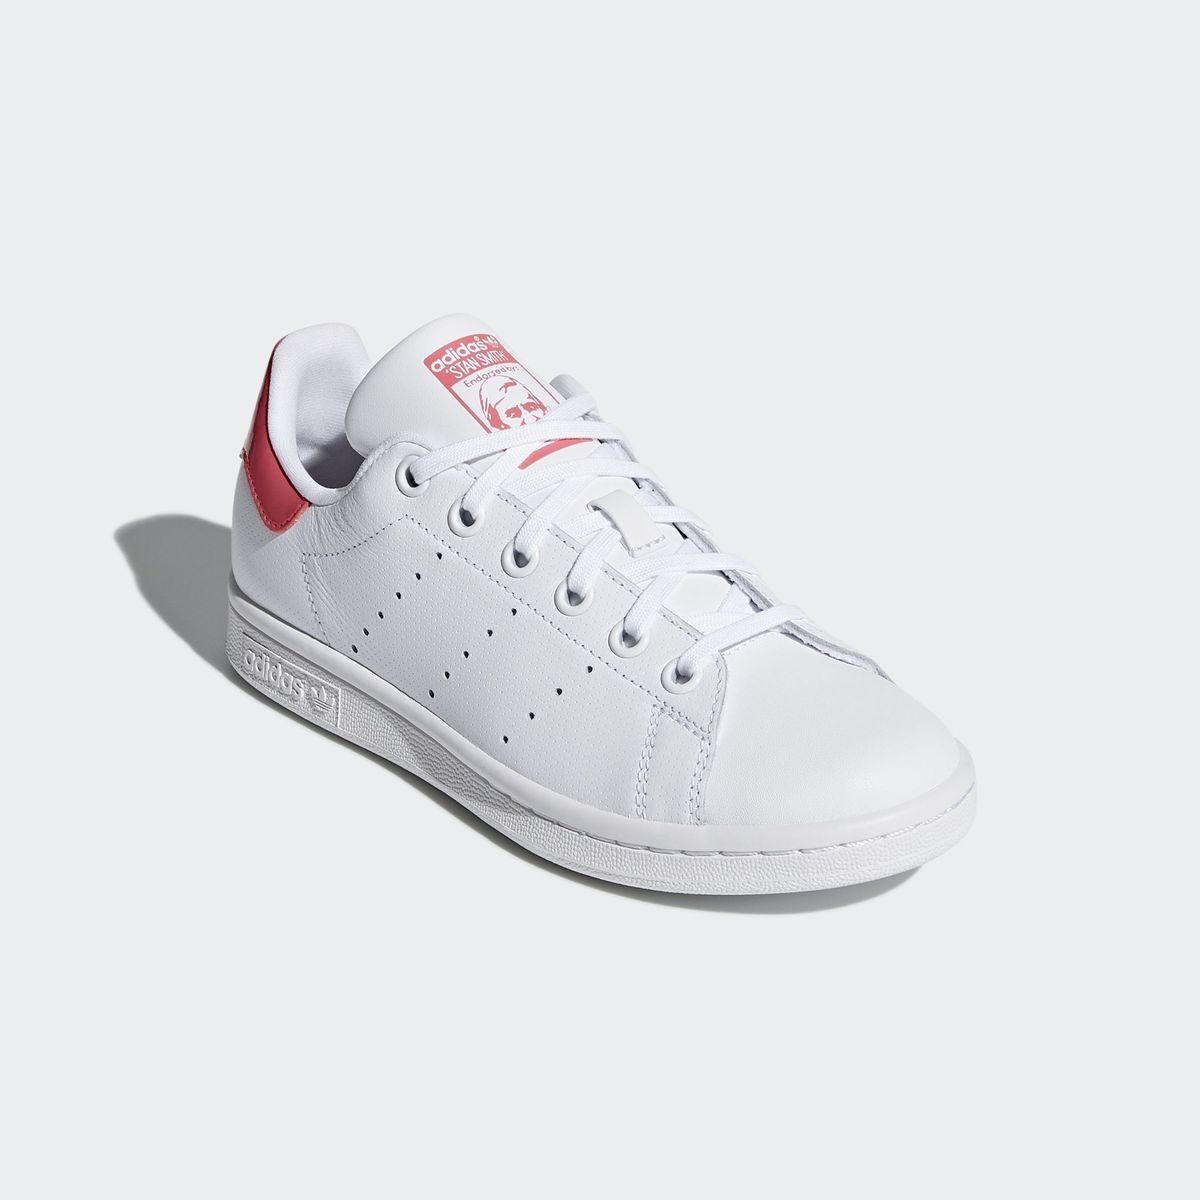 chaussures adidas fille 36